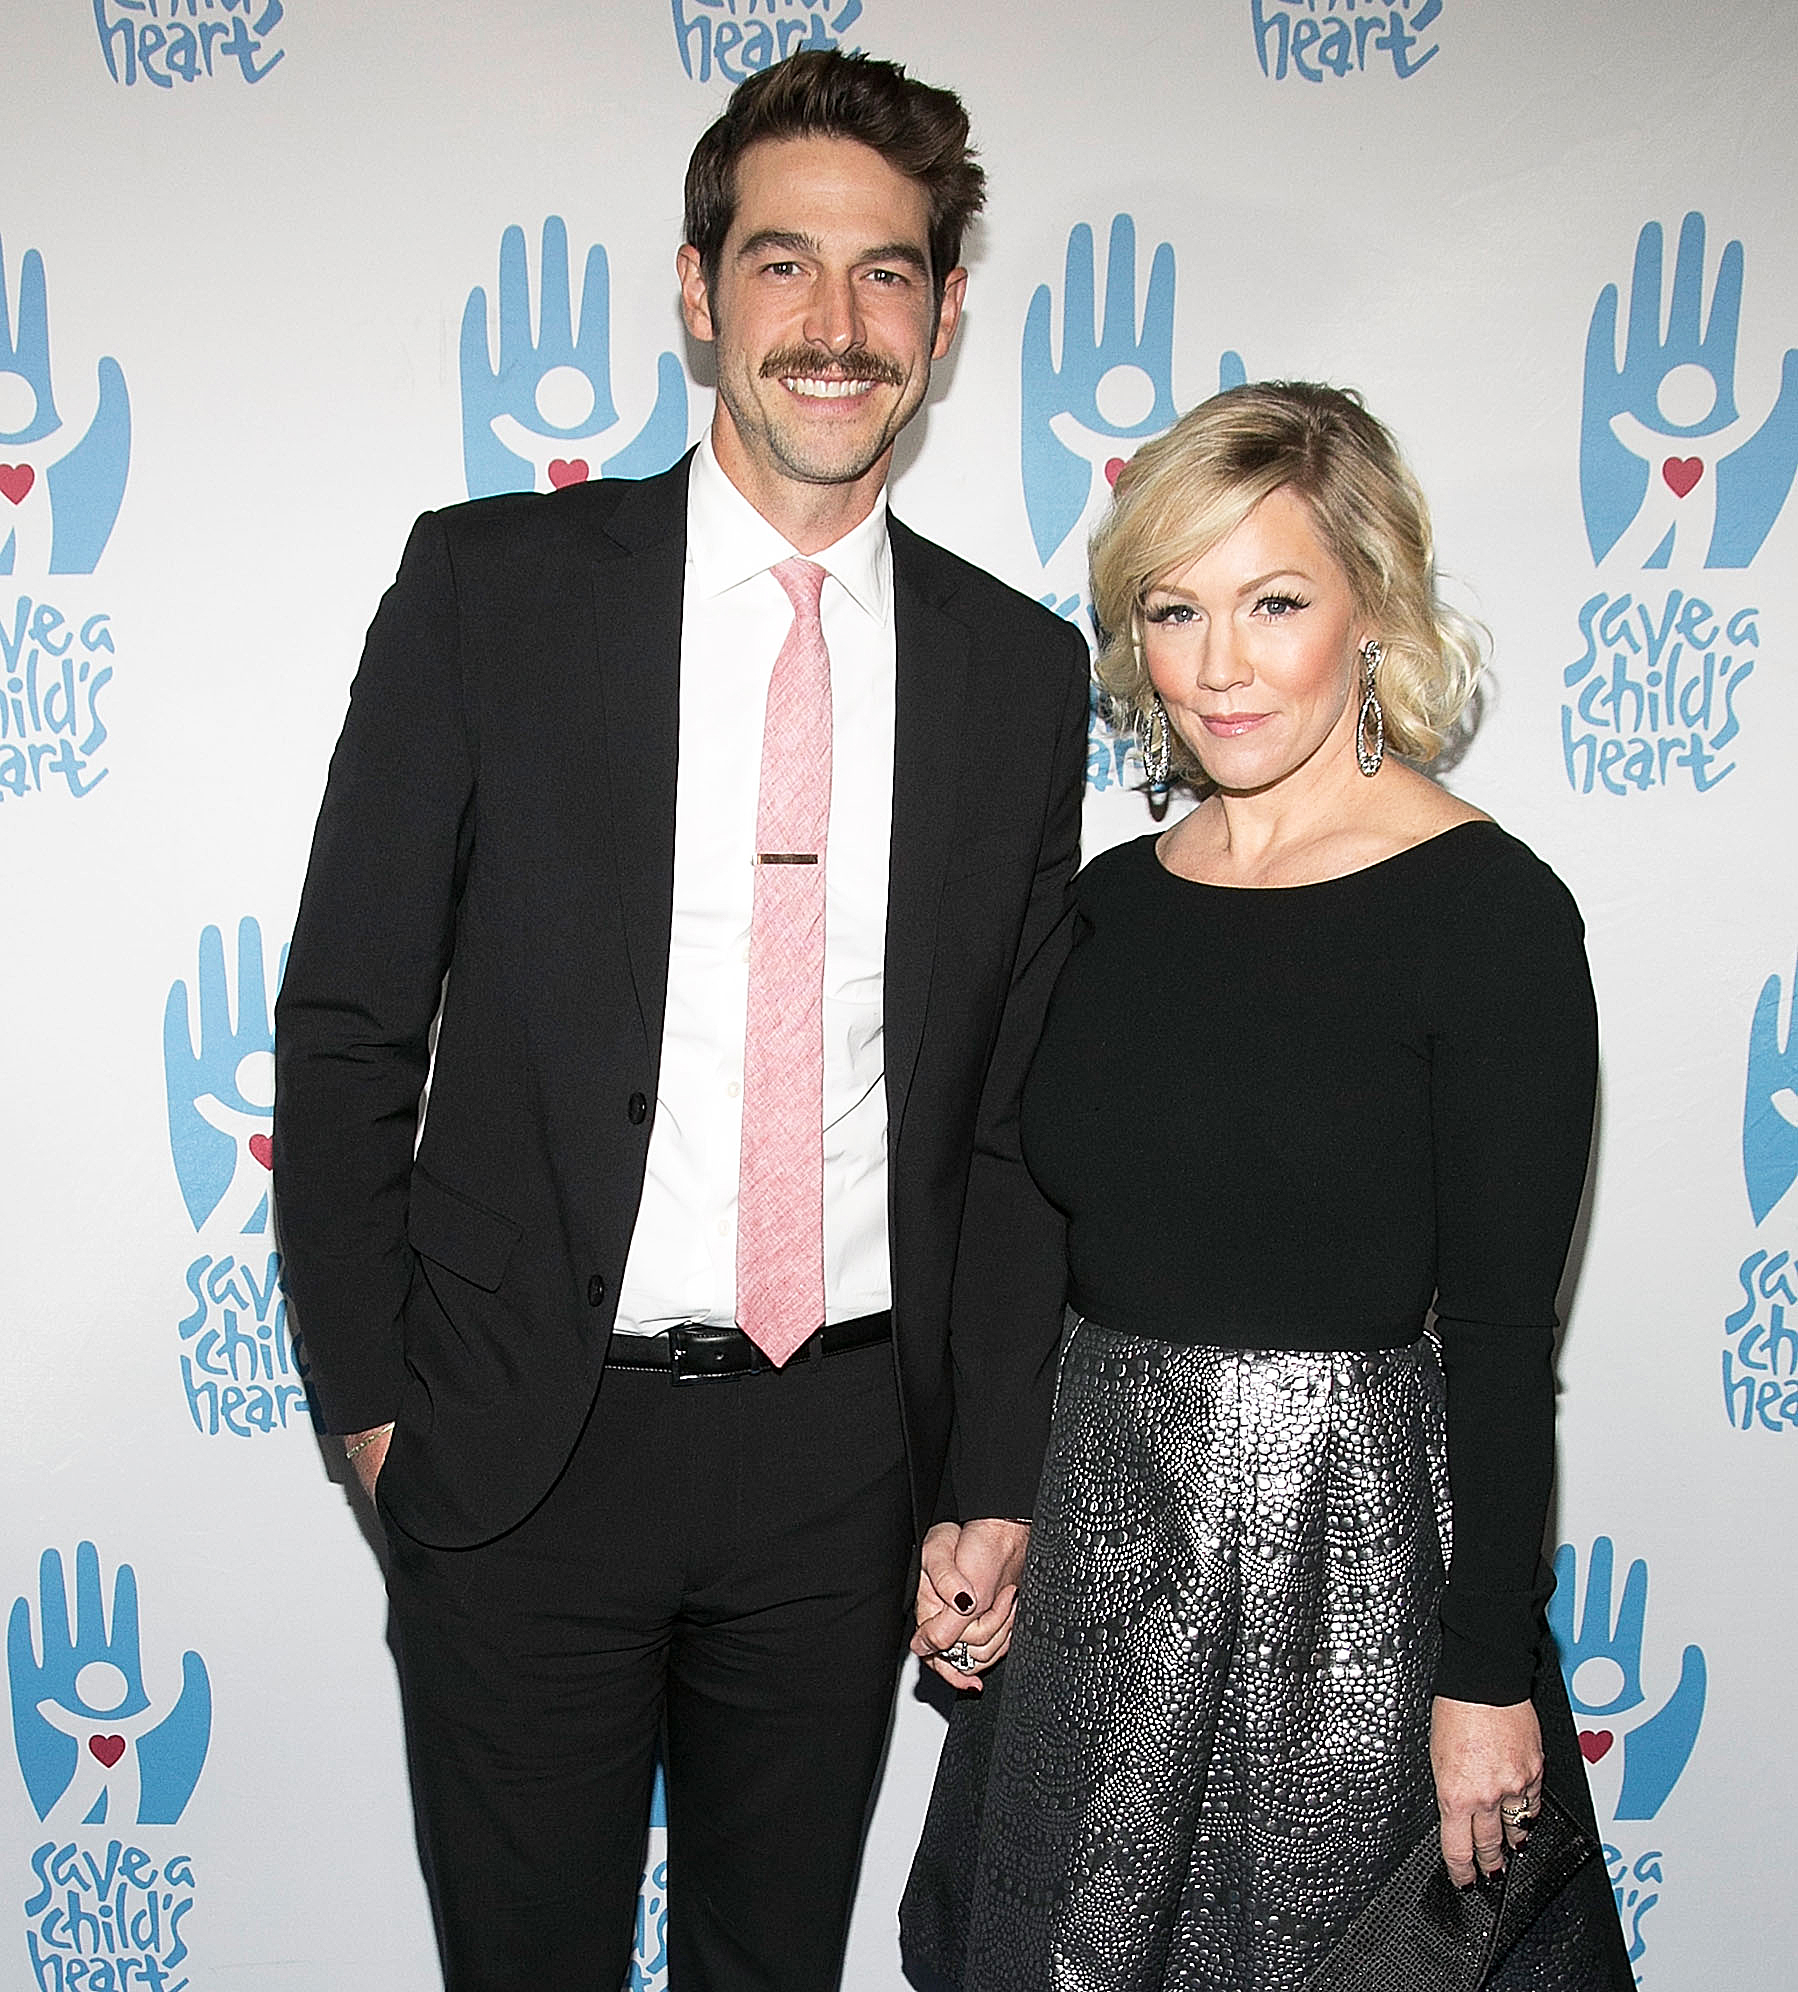 Jennie Garth's Husband Drives Her to 'BH90210' Table Read